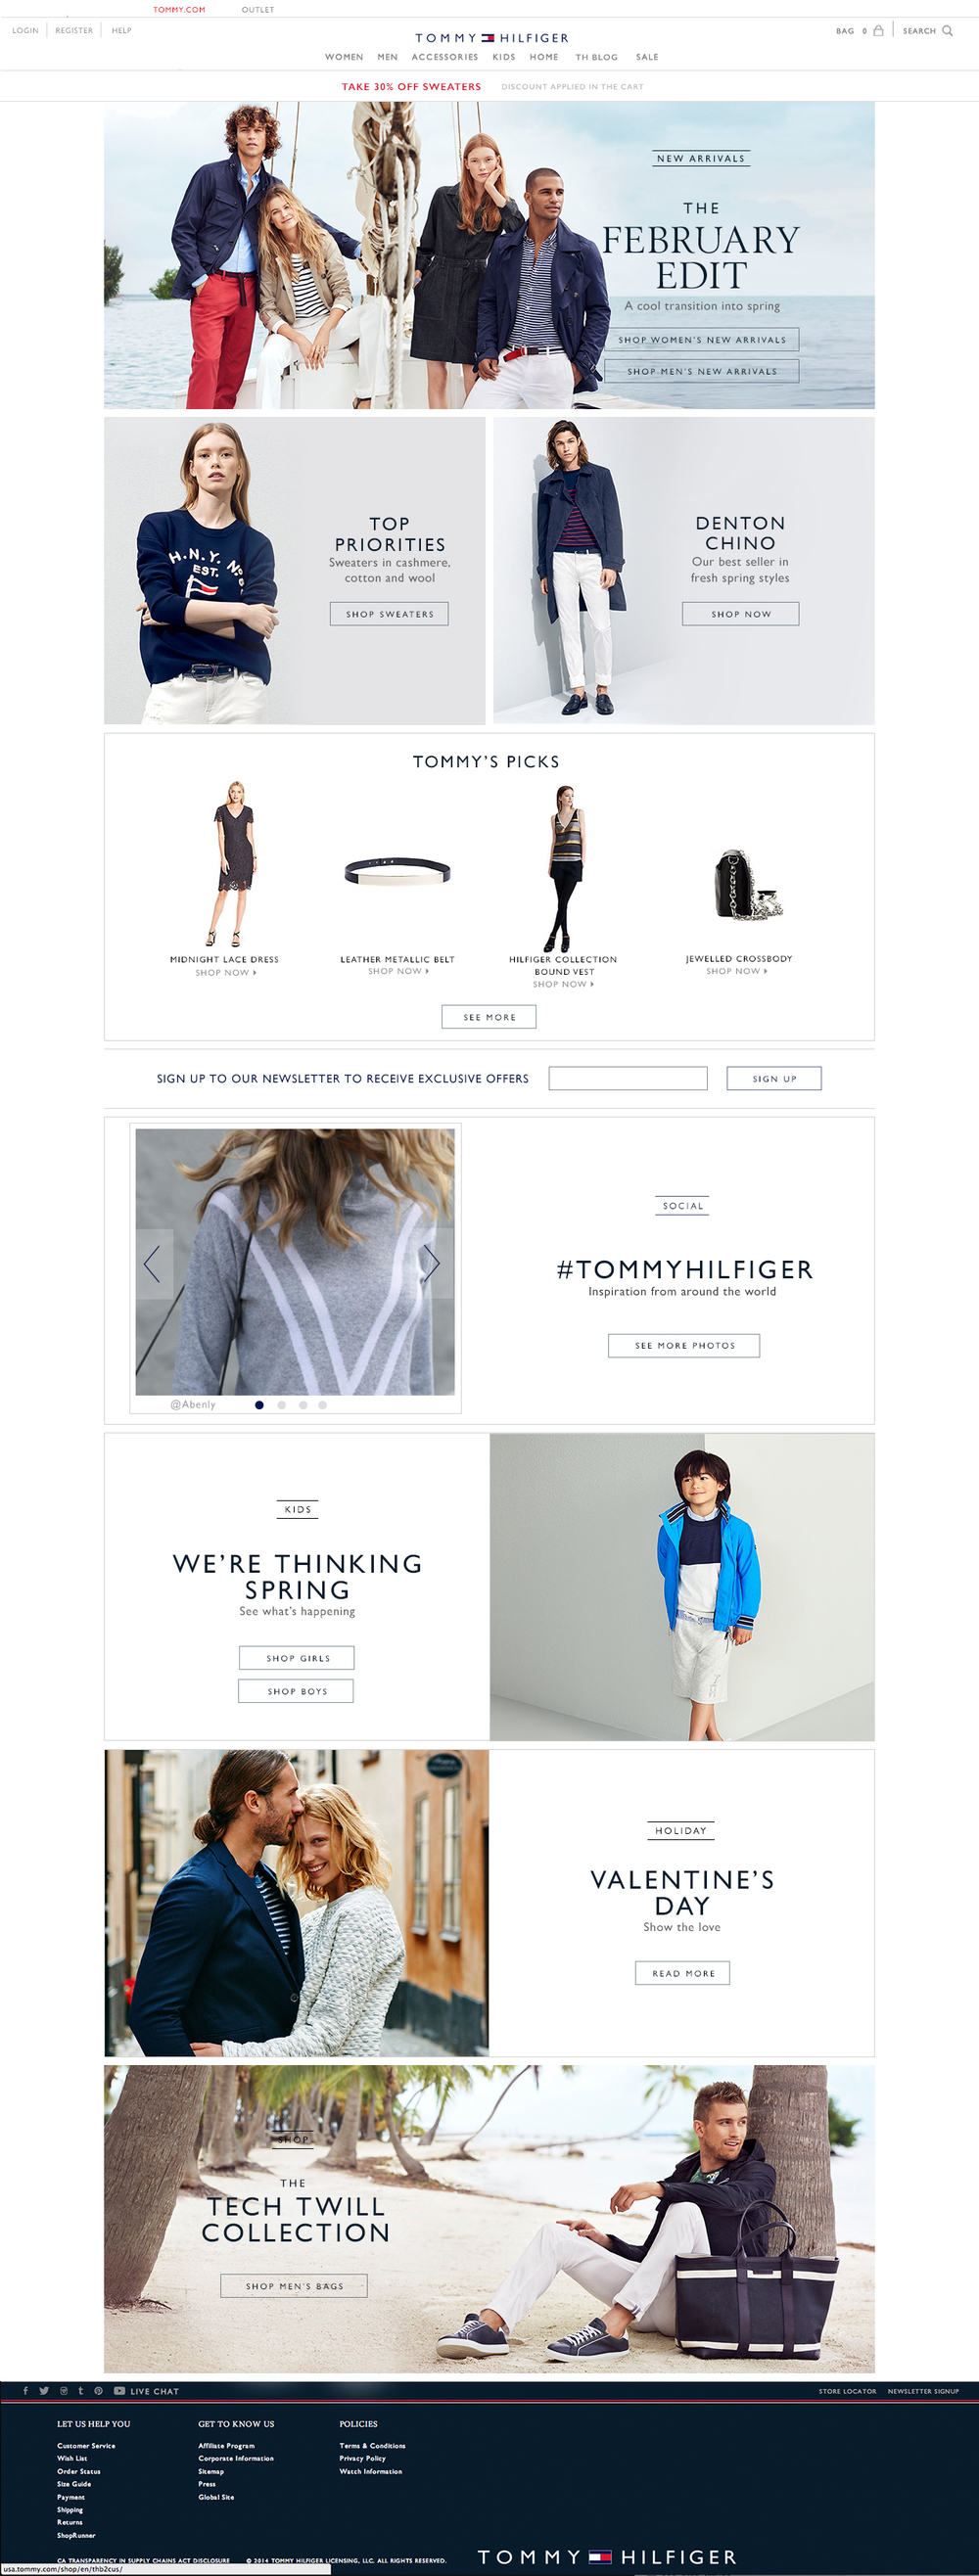 Homepage overall.png